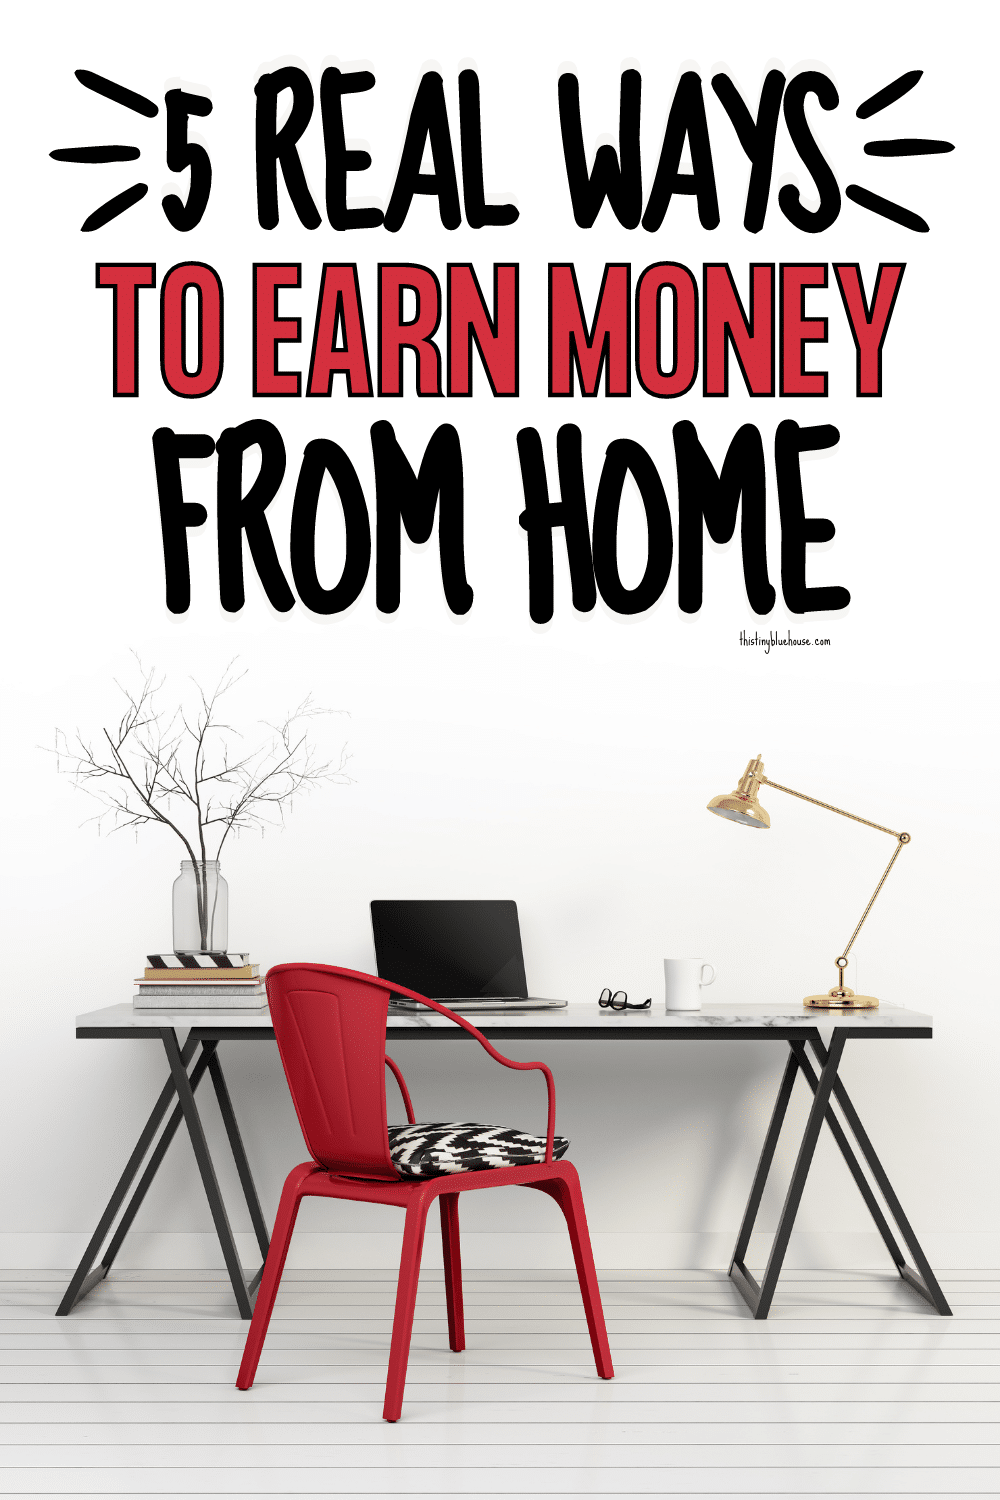 5 Real Ways To Earn Money From Home